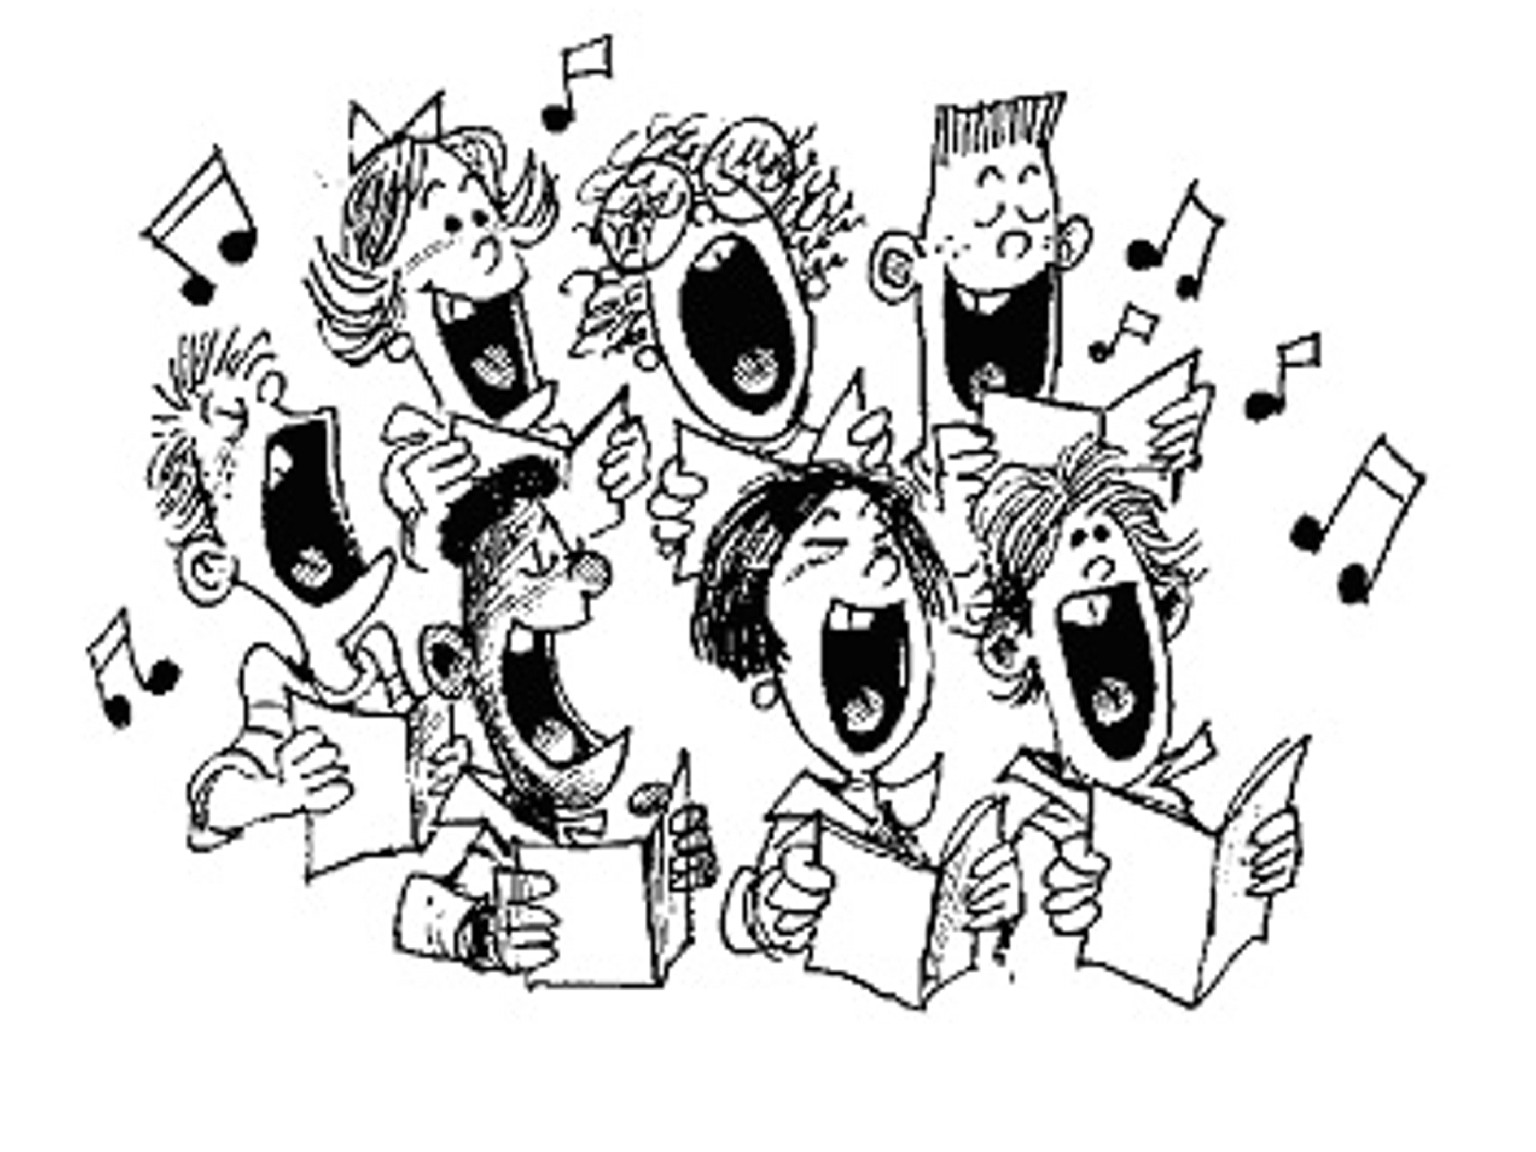 Church singing clipart png black and white Choir Singer Clipart & Clip Art Images #1692 - clipartimage.com png black and white